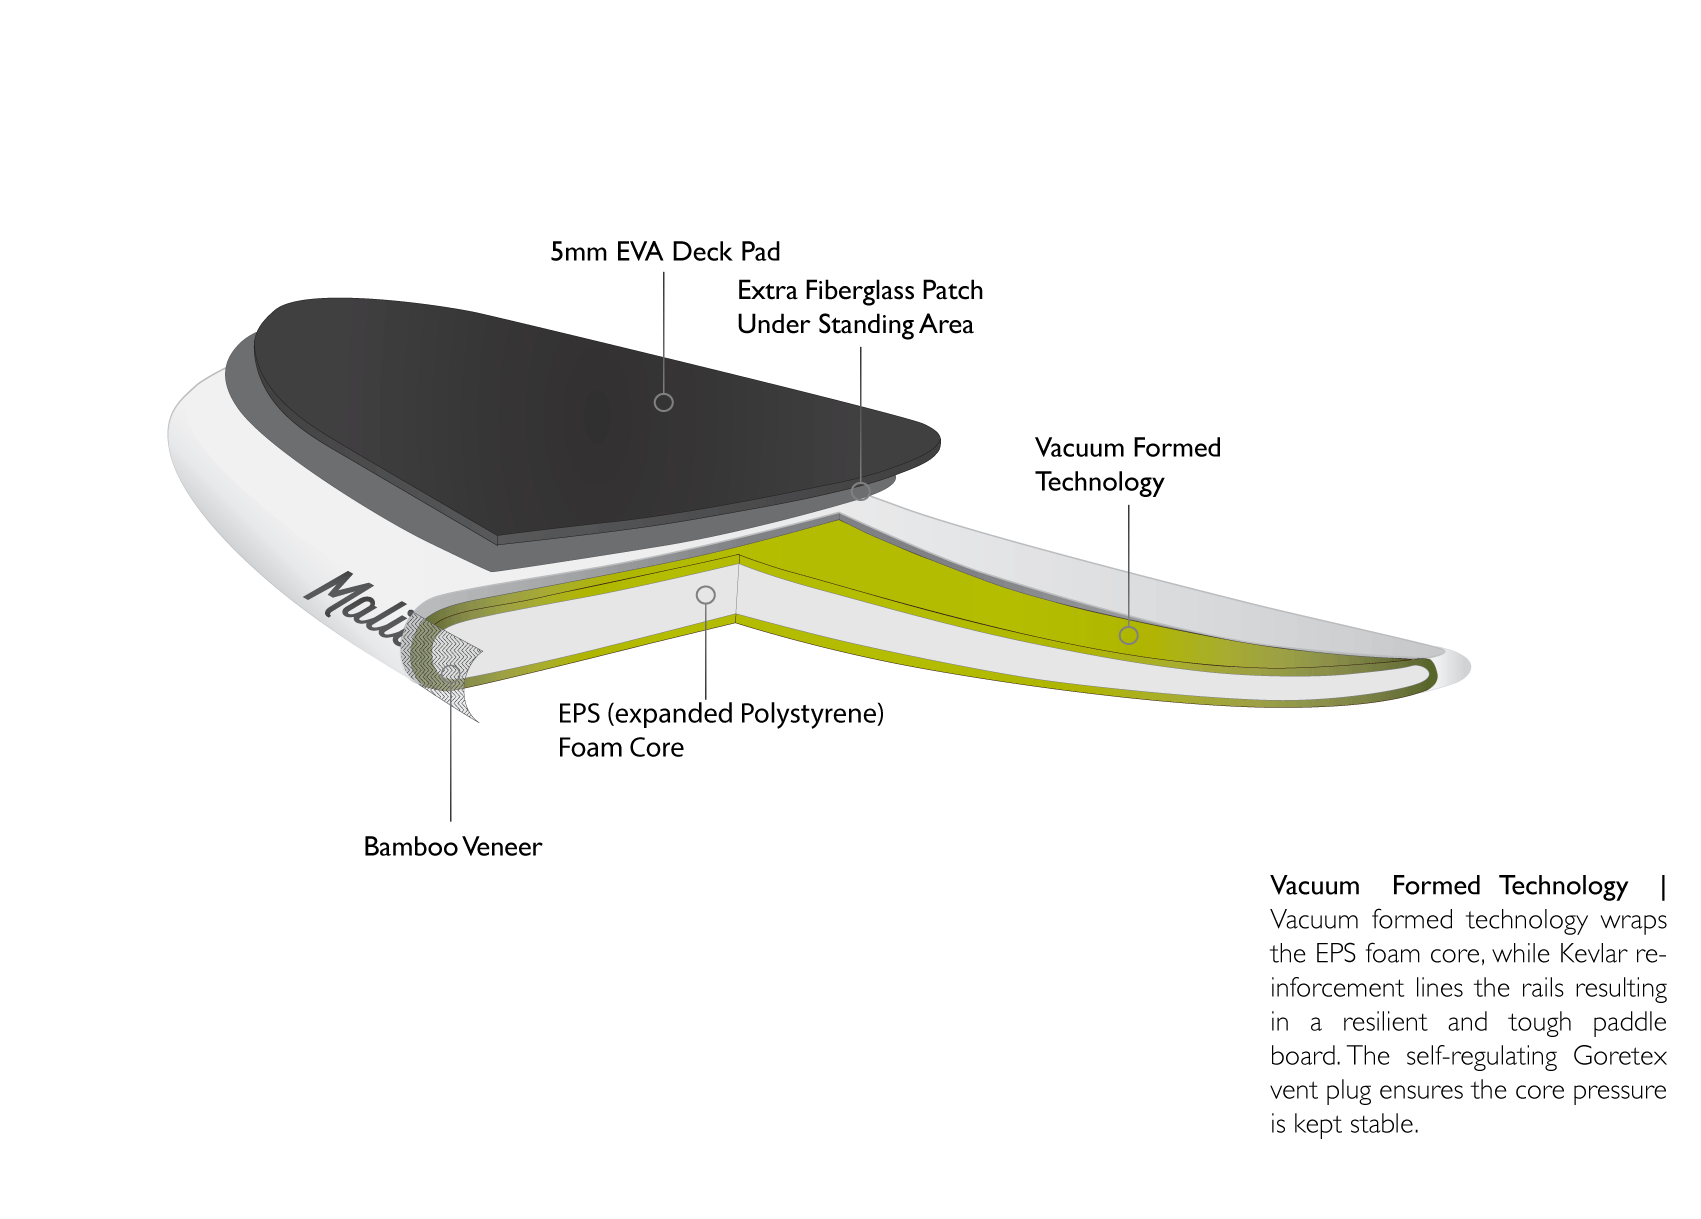 The Malibu is the best beginner stand up paddle board on the market. This board features Vacuum formed technology which wraps around the EPS core while kevlar reinforcement lines the rails resulting in a resilient and tough paddle board. The Self Regulating Goretex vent plug endures the core pressure is kept stable